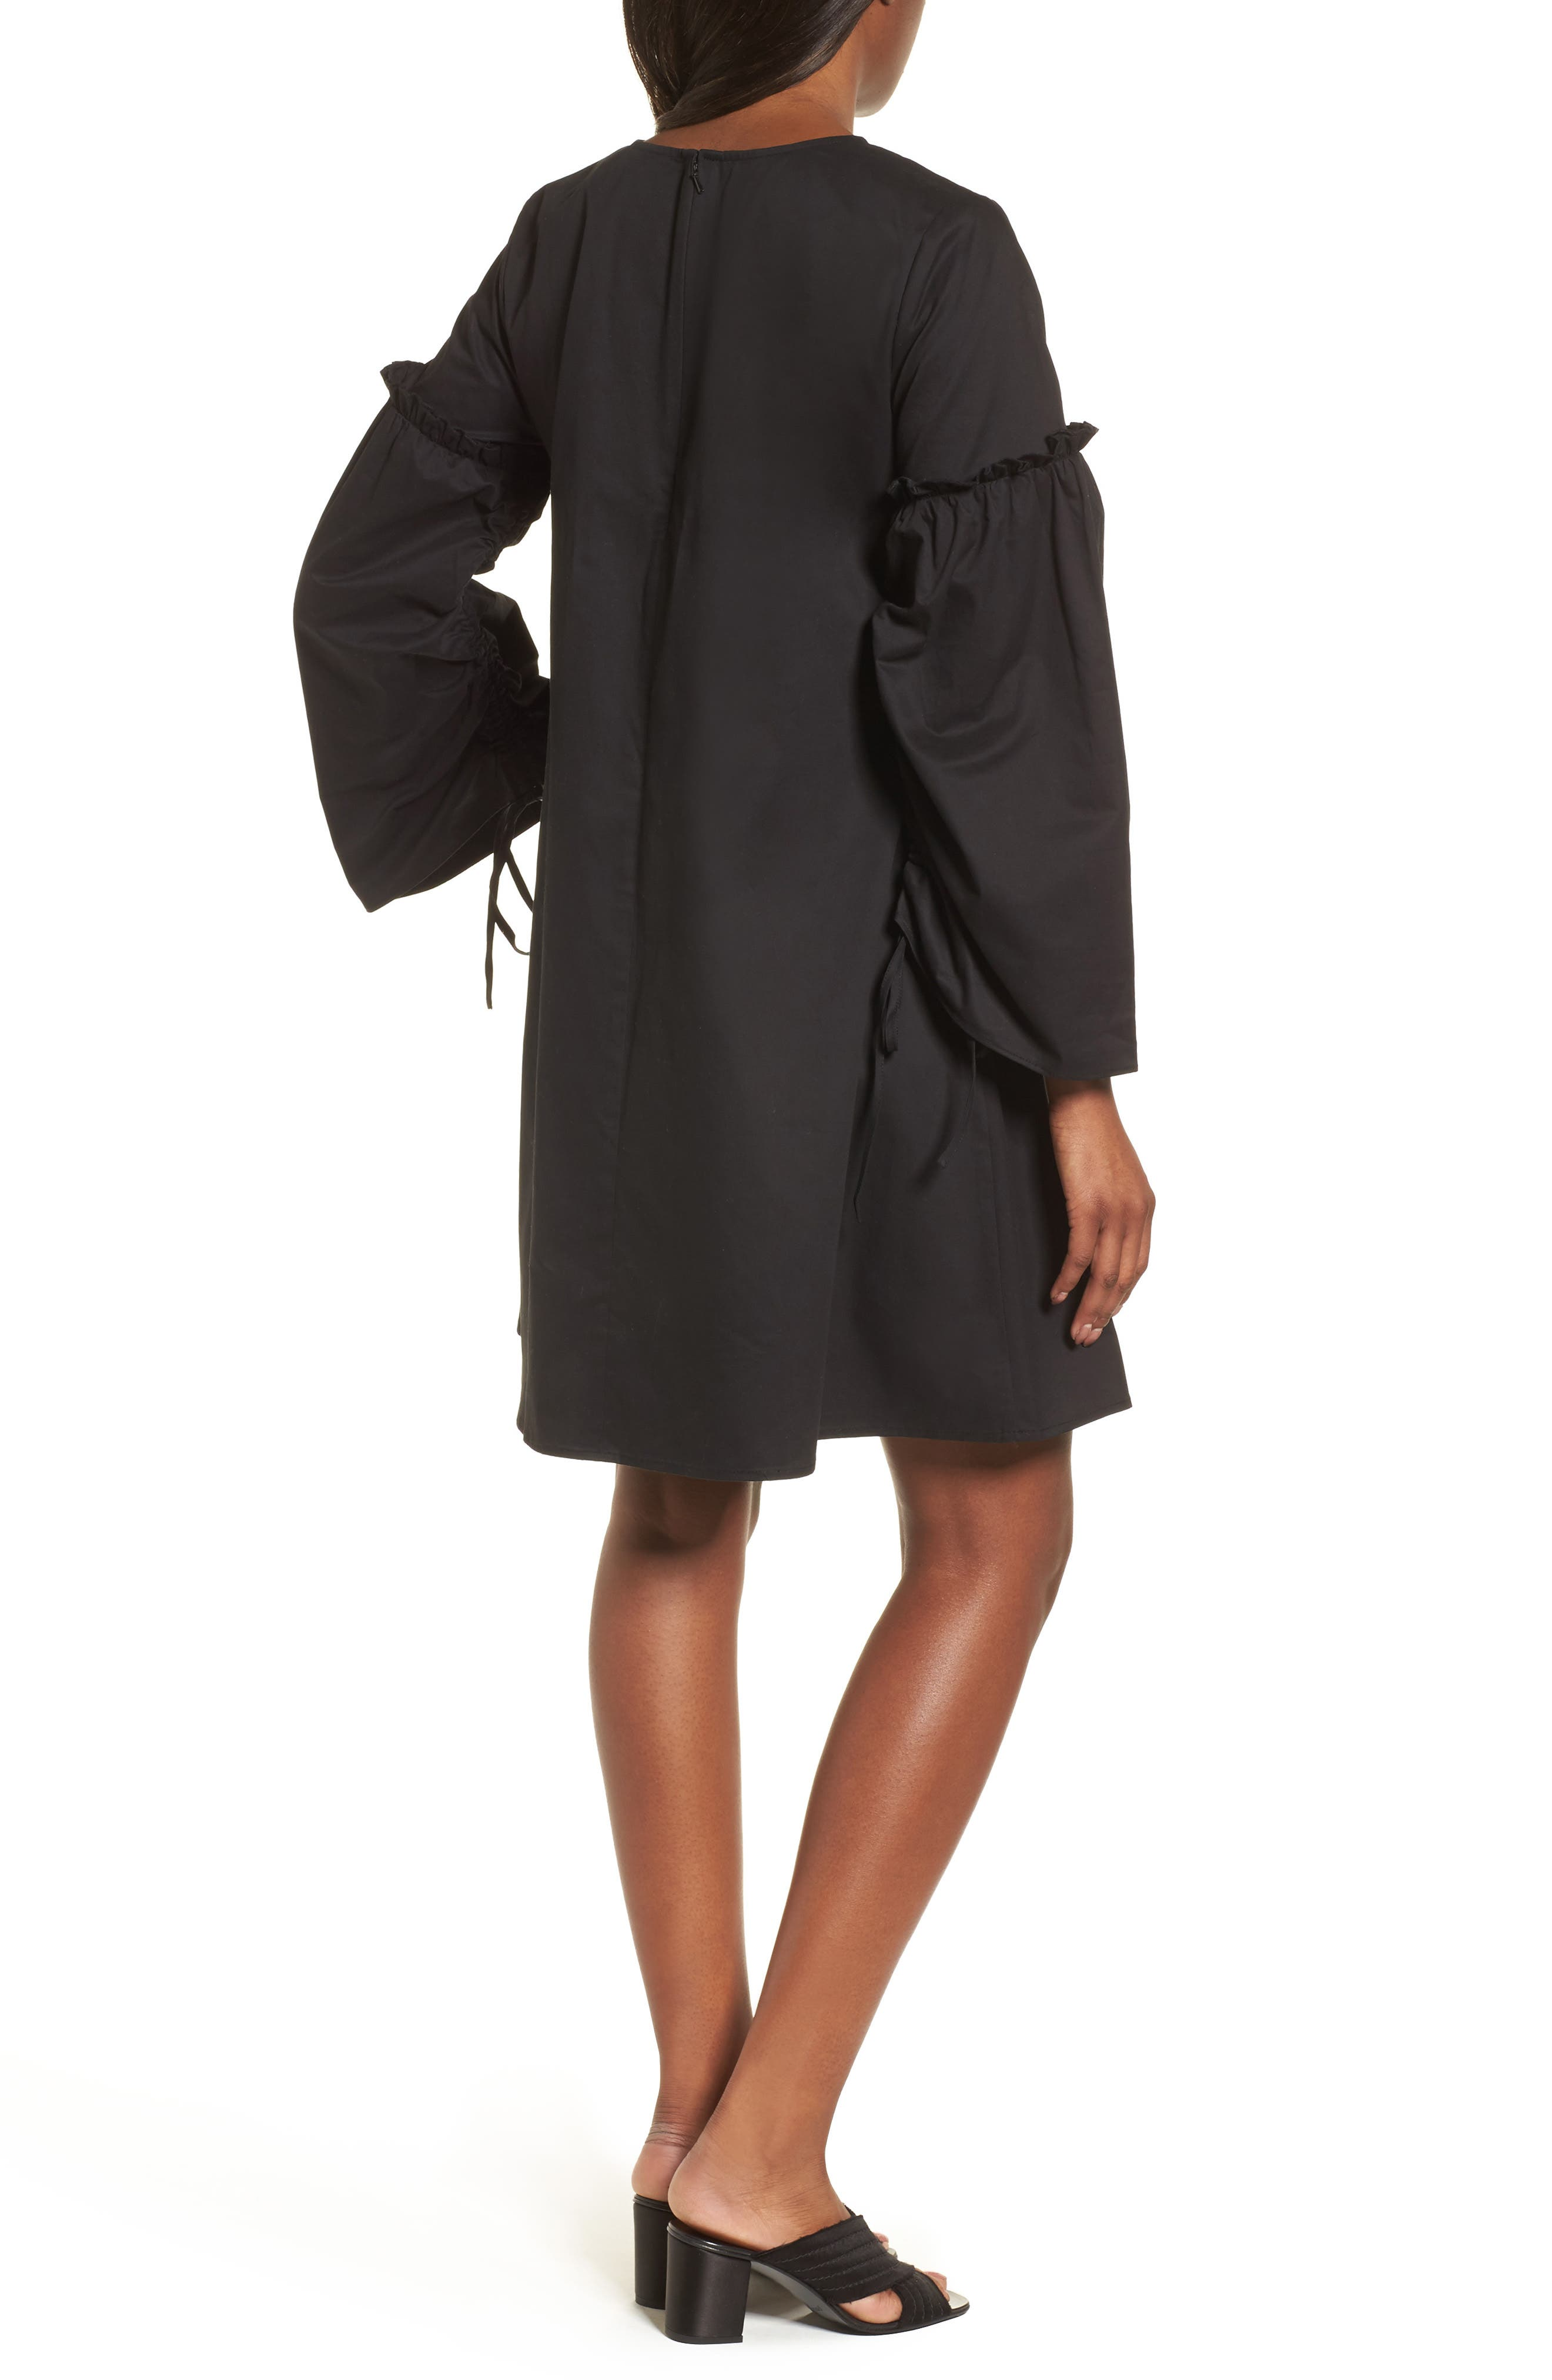 Parachute Sleeve Shift Dress,                             Alternate thumbnail 2, color,                             001